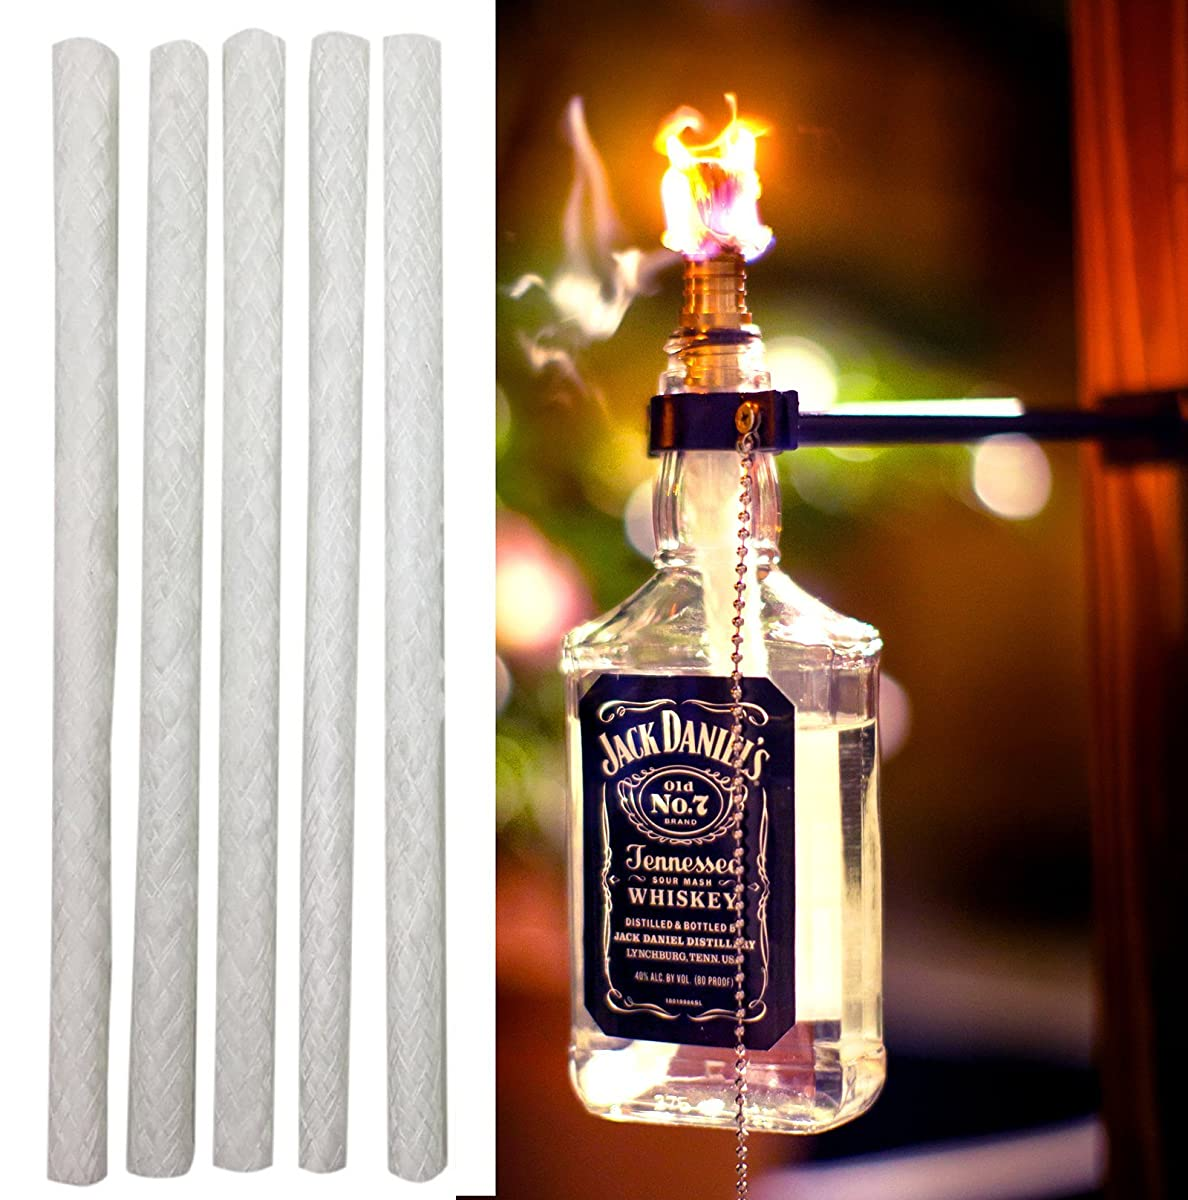 Fiberglass Tiki Torch Wicks